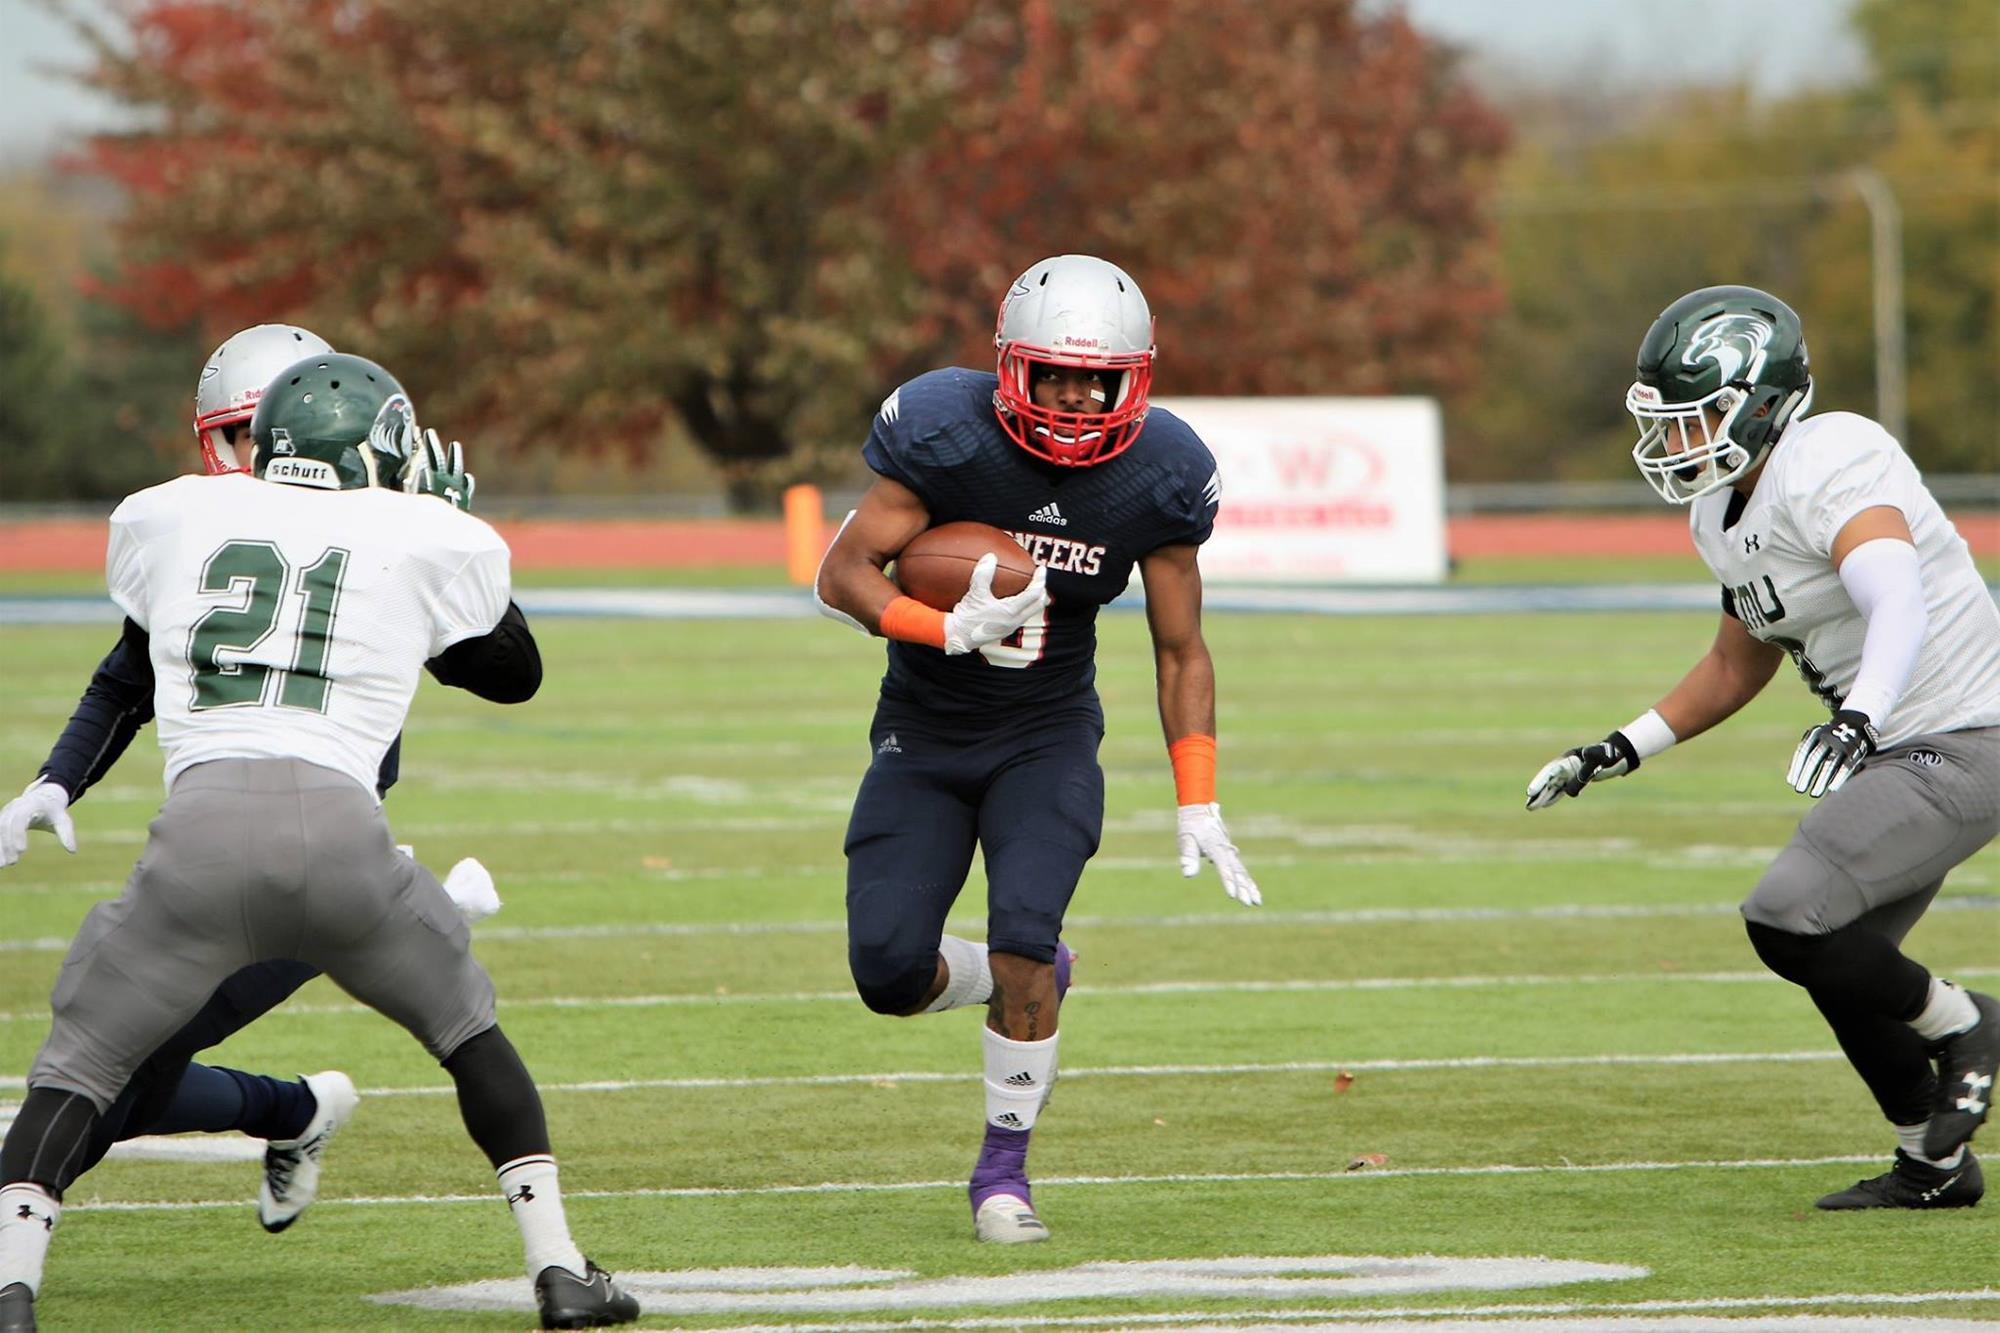 football games to be played at odac in '12 - midamerica nazarene